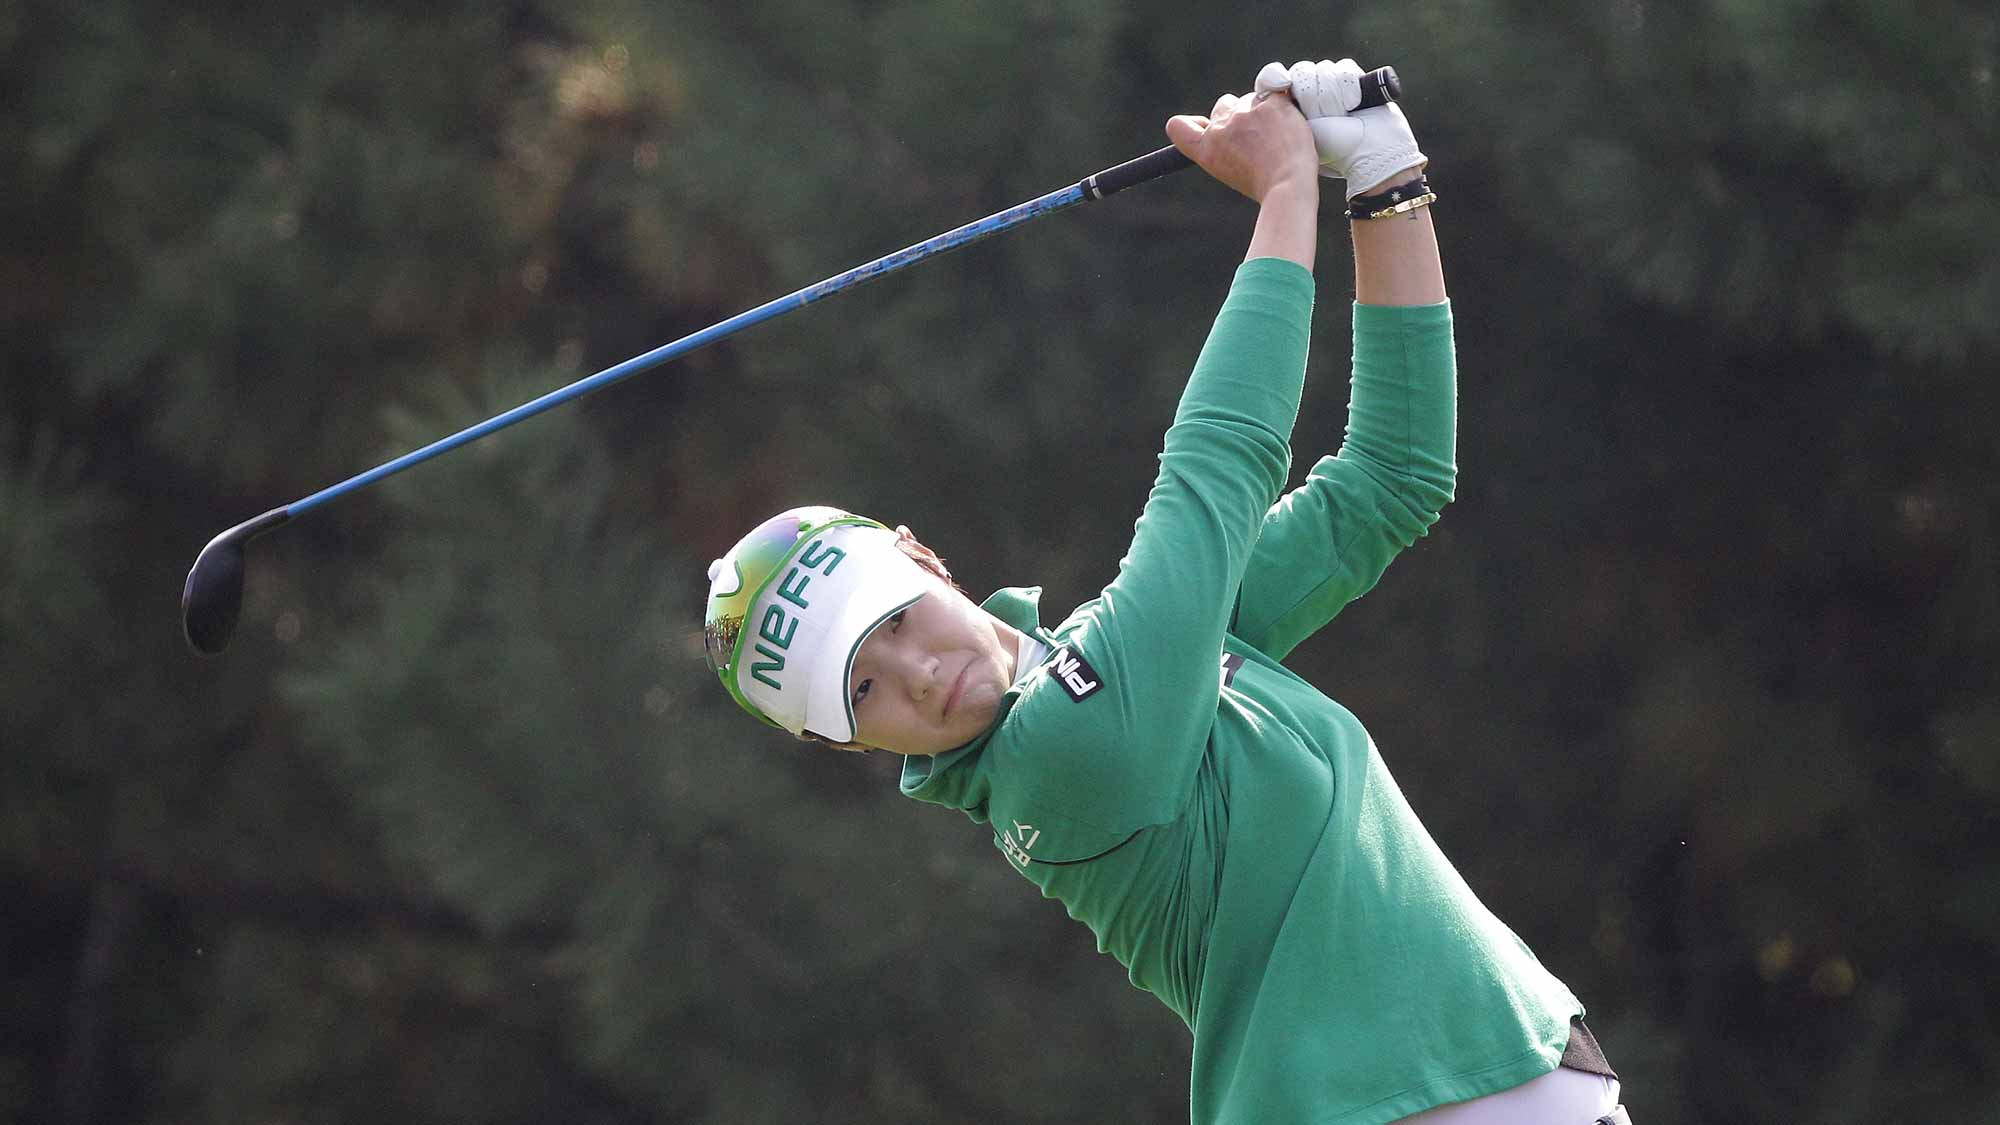 Sung Hyun Park of South Korea plays a tee shot on the 4th hole during round two of the LPGA KEB Hana Bank Championship